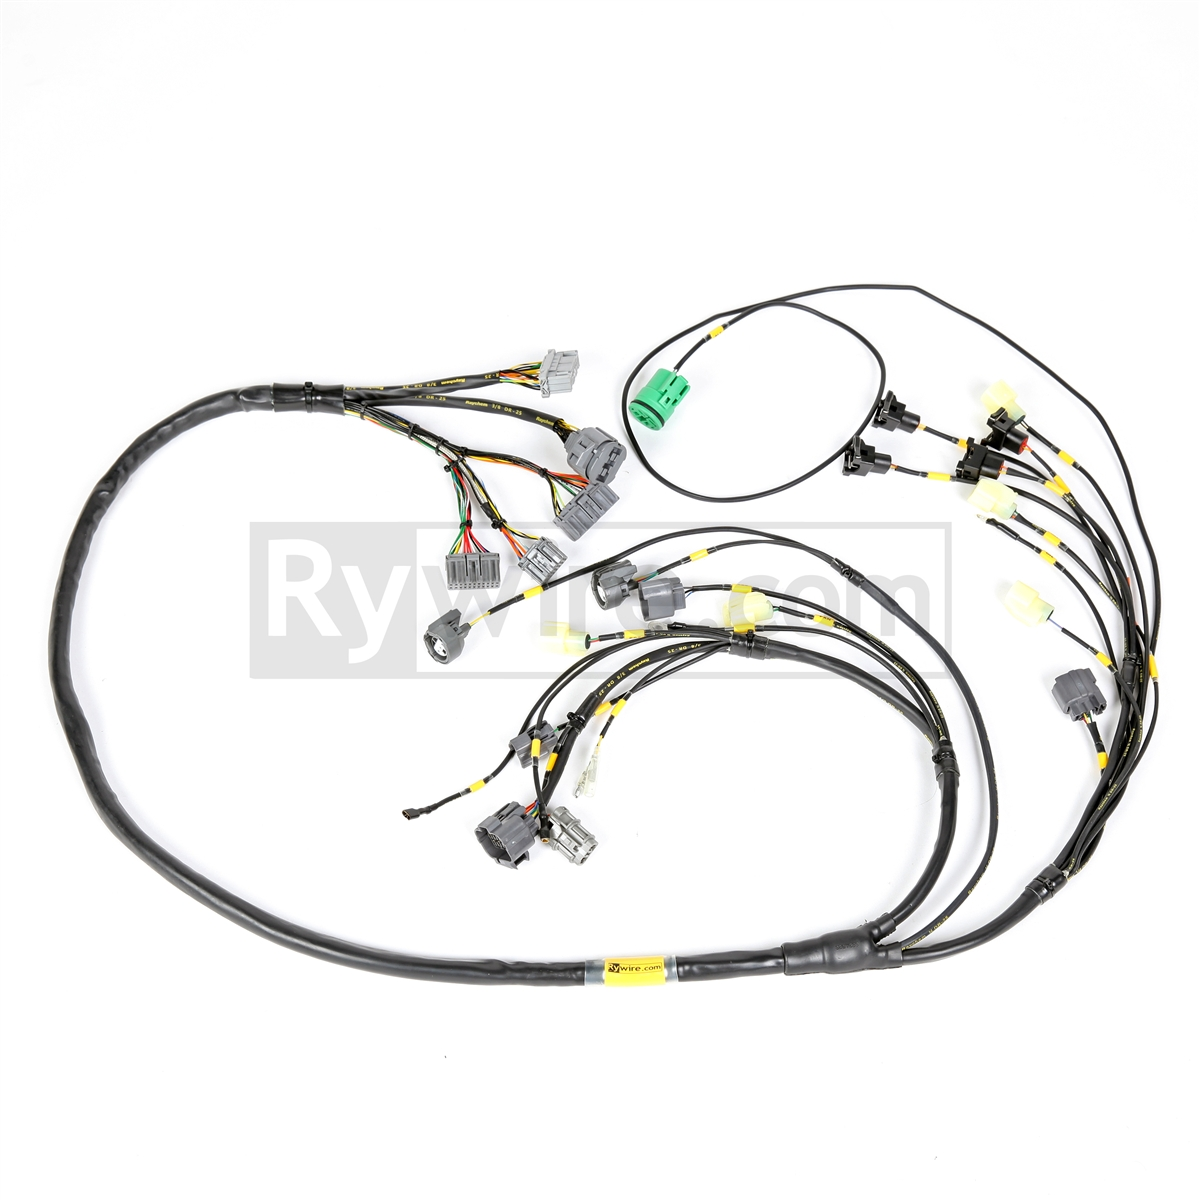 Super H22A4 Wiring Harness Wiring Diagram Wiring Cloud Hisonuggs Outletorg